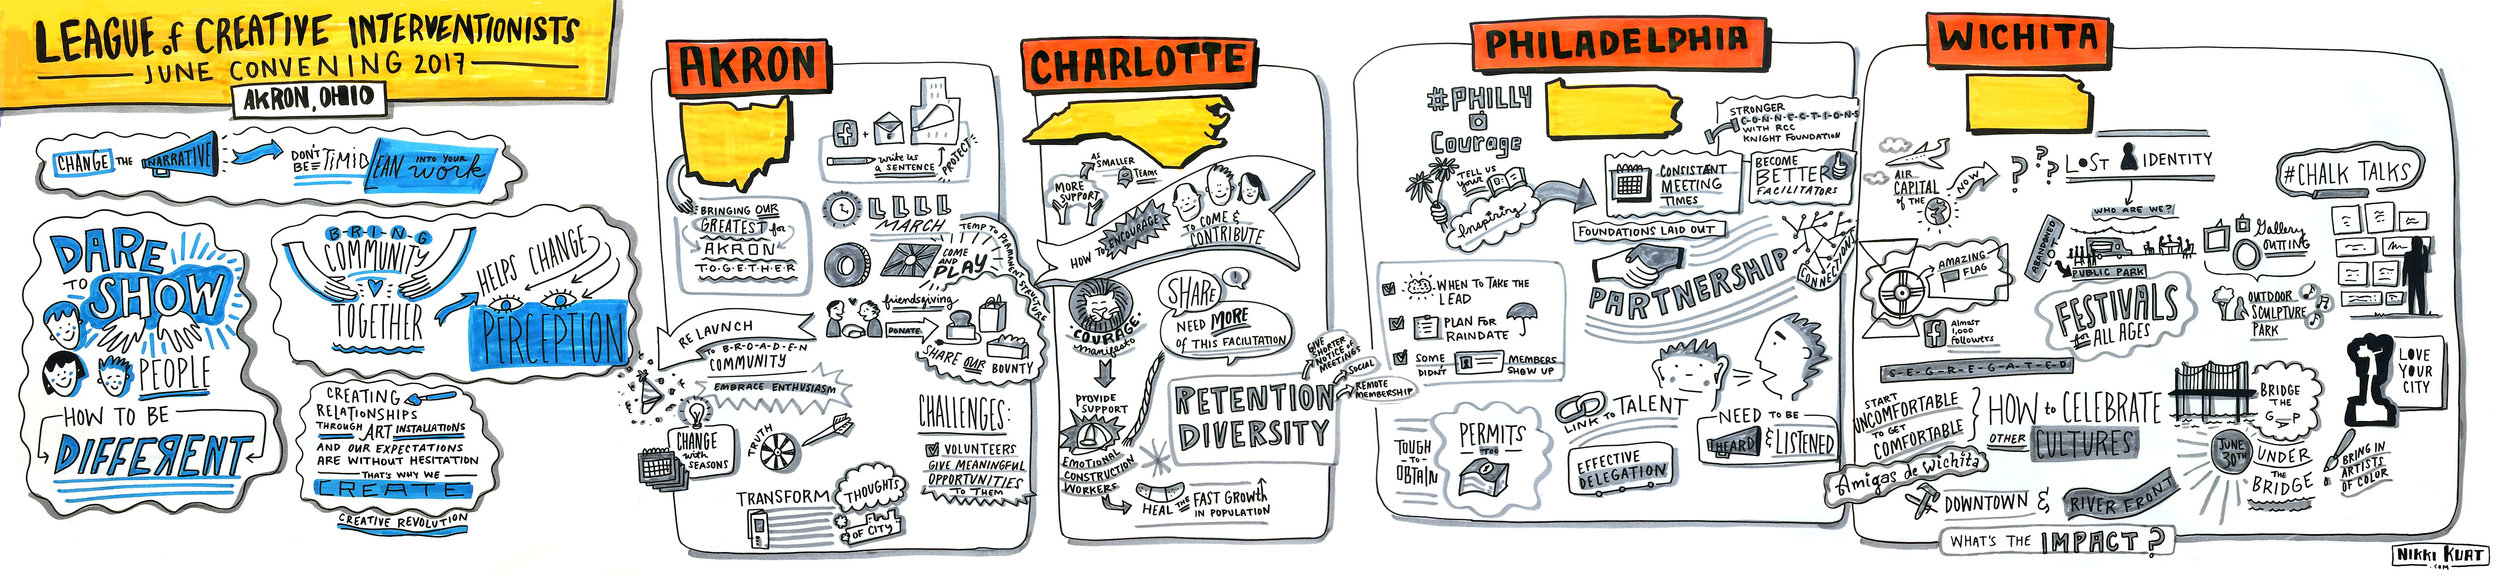 Graphic Storytelling Design by Nikki Kurt from the 2017 Creative Interventionist Convening